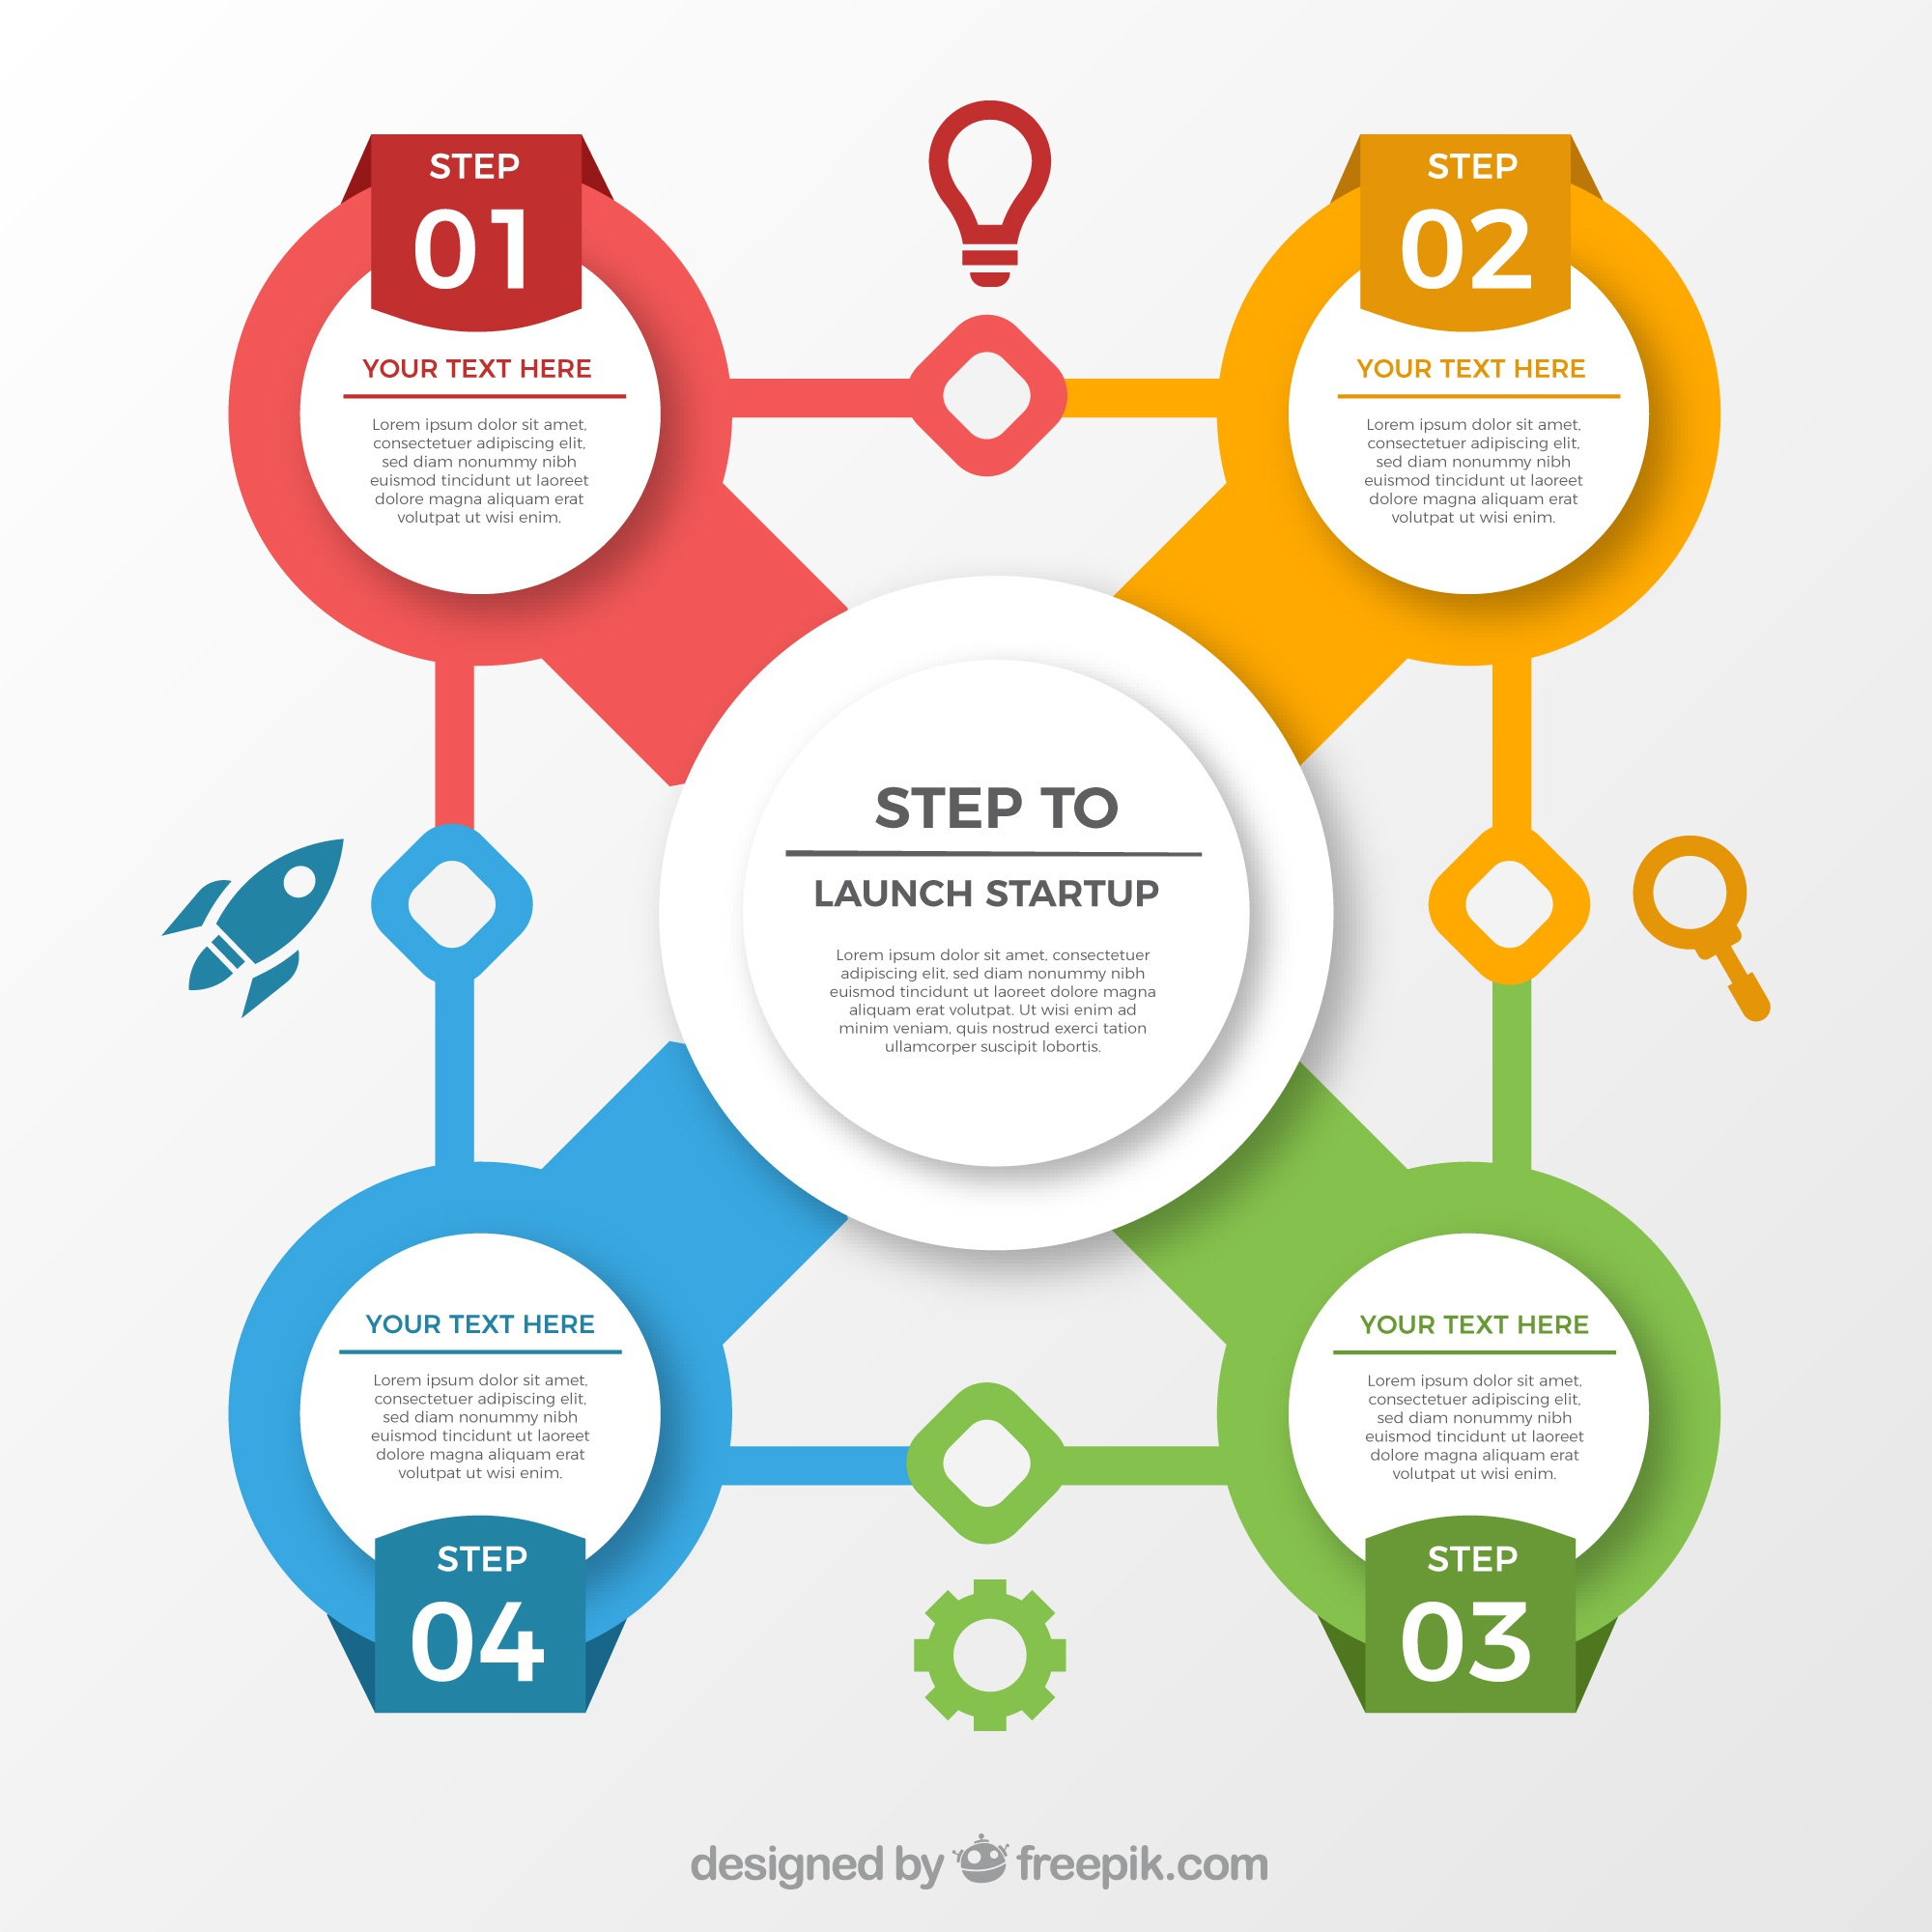 Circular infographic with steps and different colors